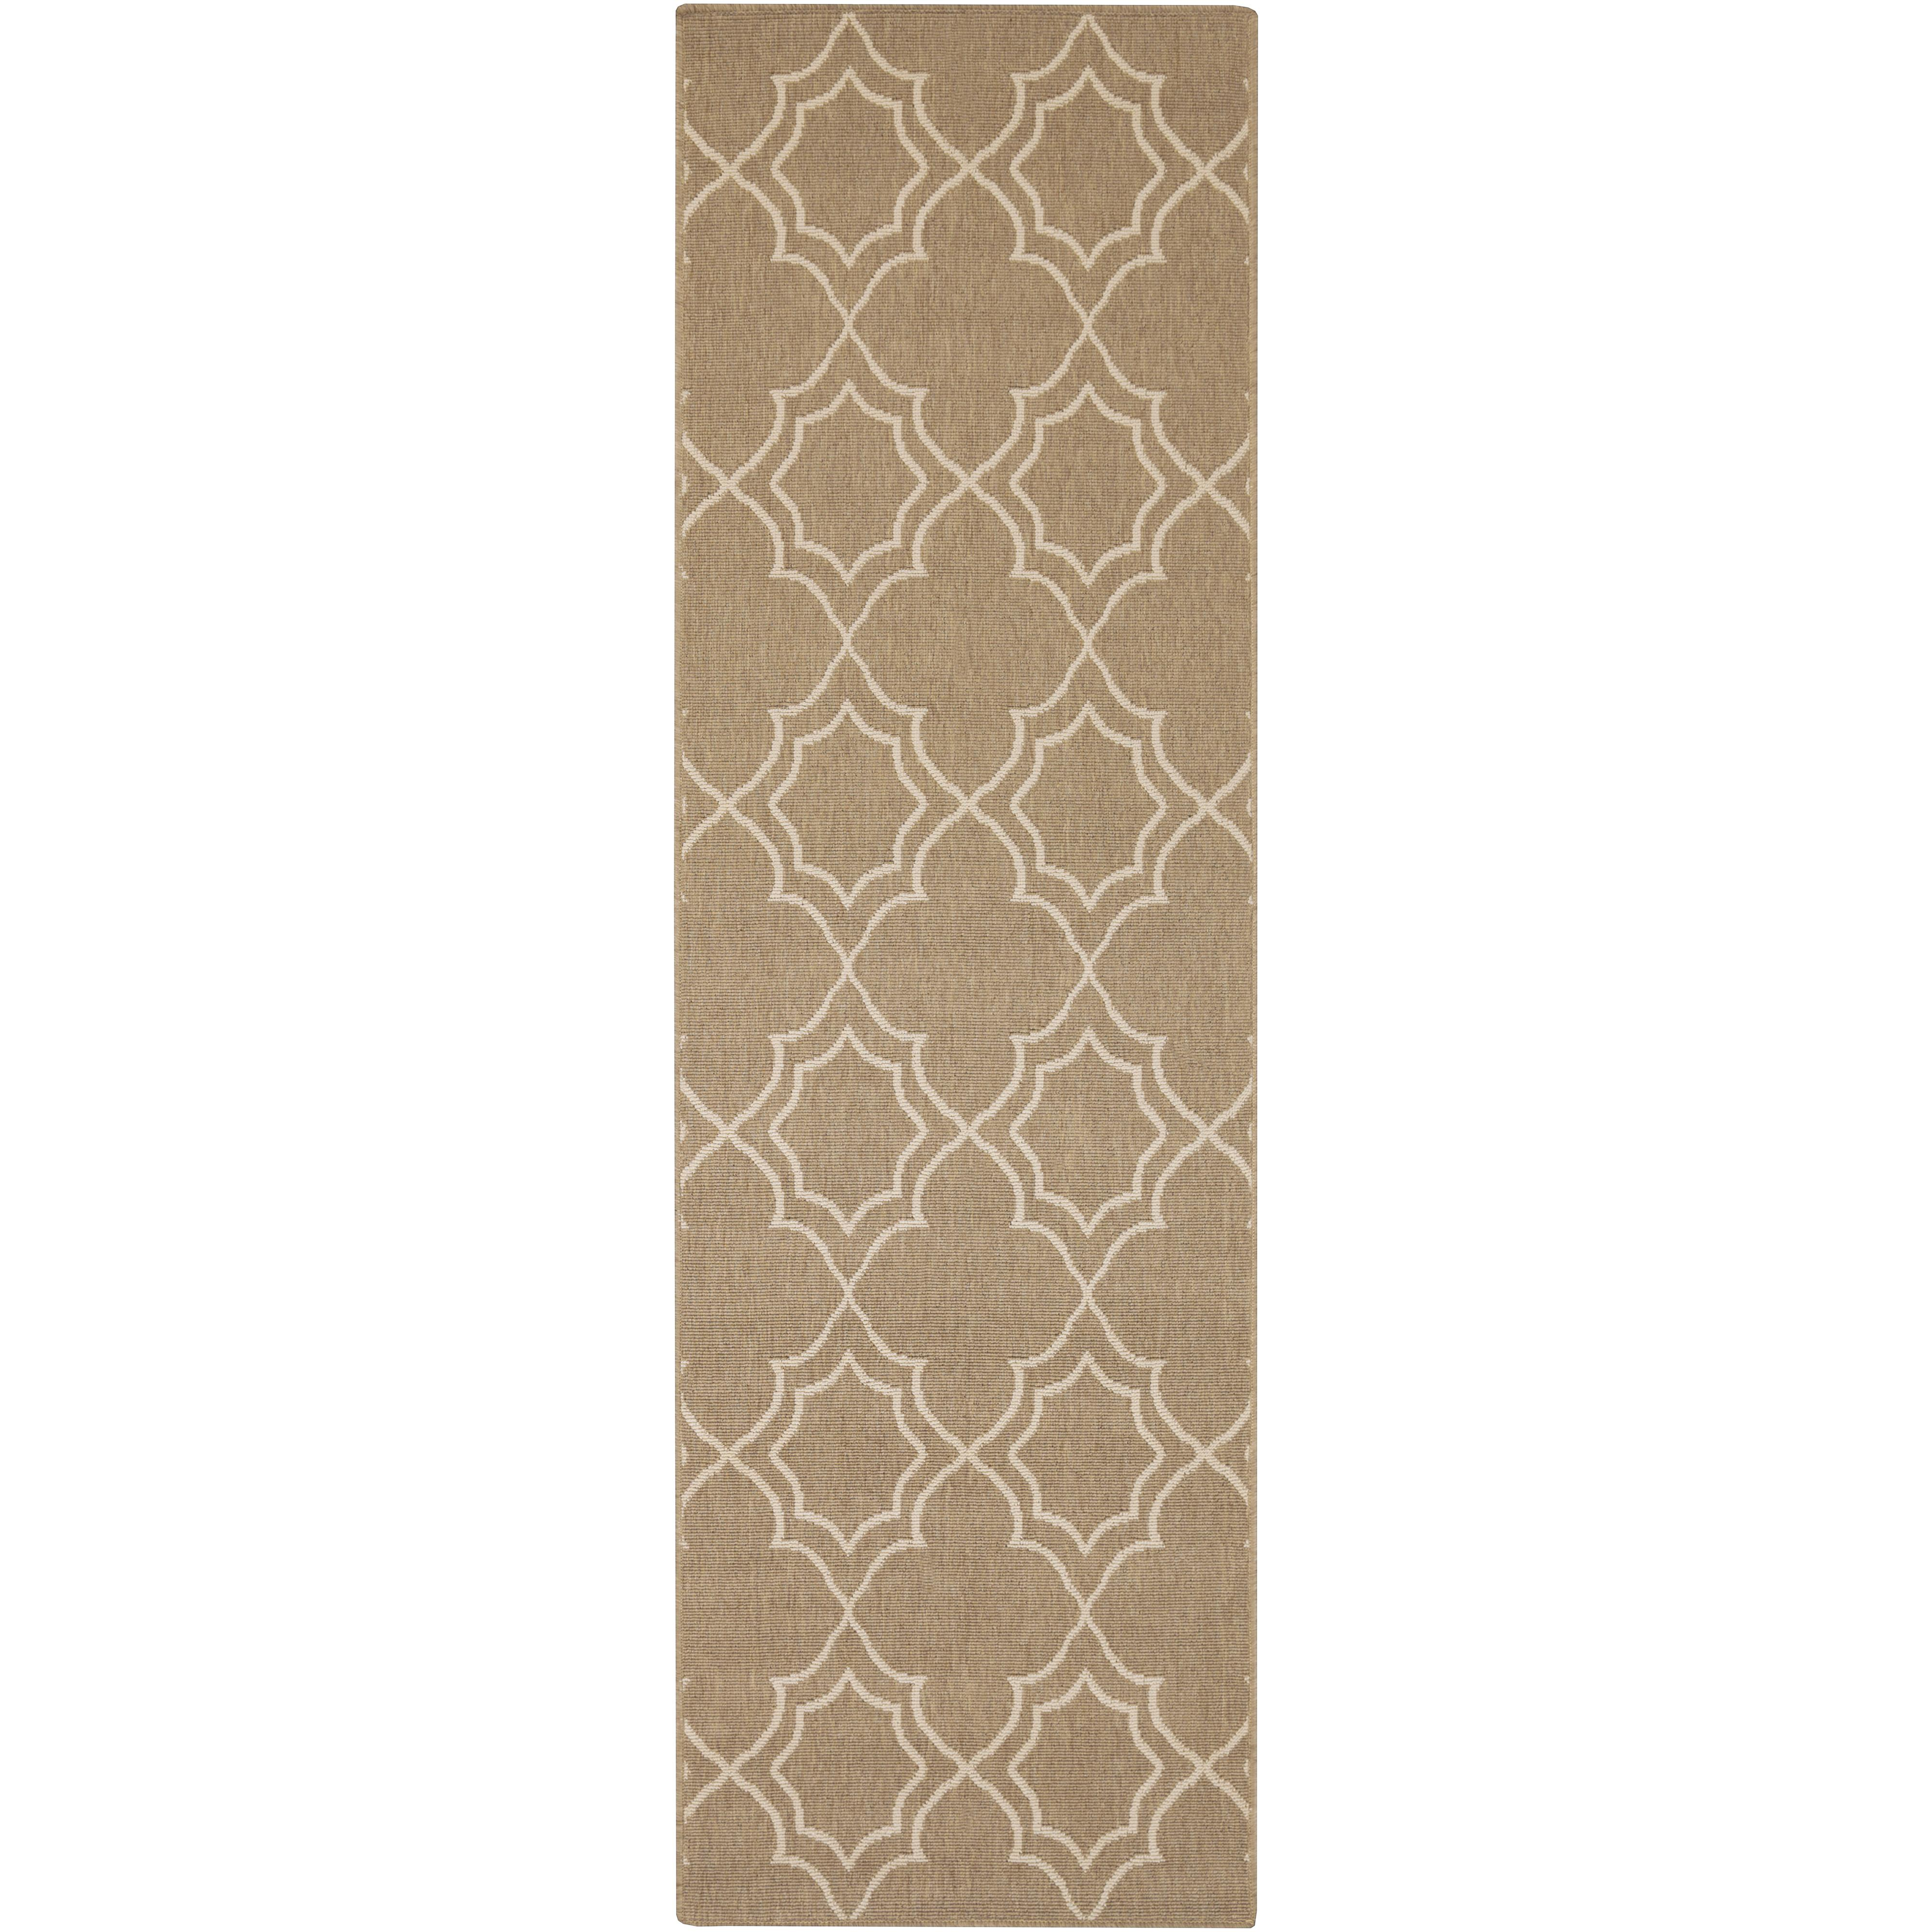 "Surya Rugs Alfresco 2'3"" x 7'9"" - Item Number: ALF9587-2379"